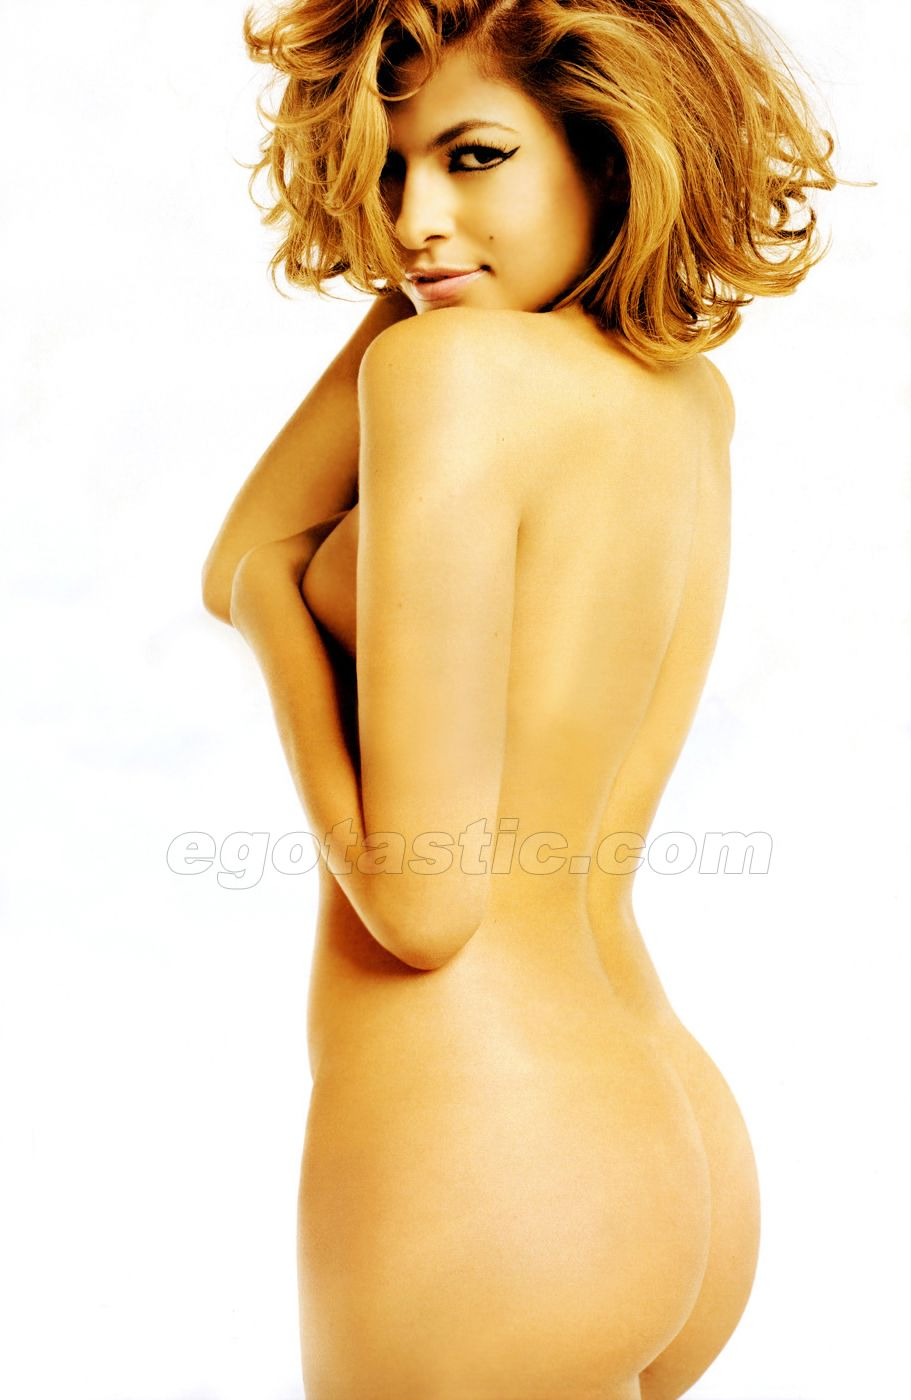 eva mendes nude for free jpg 422x640